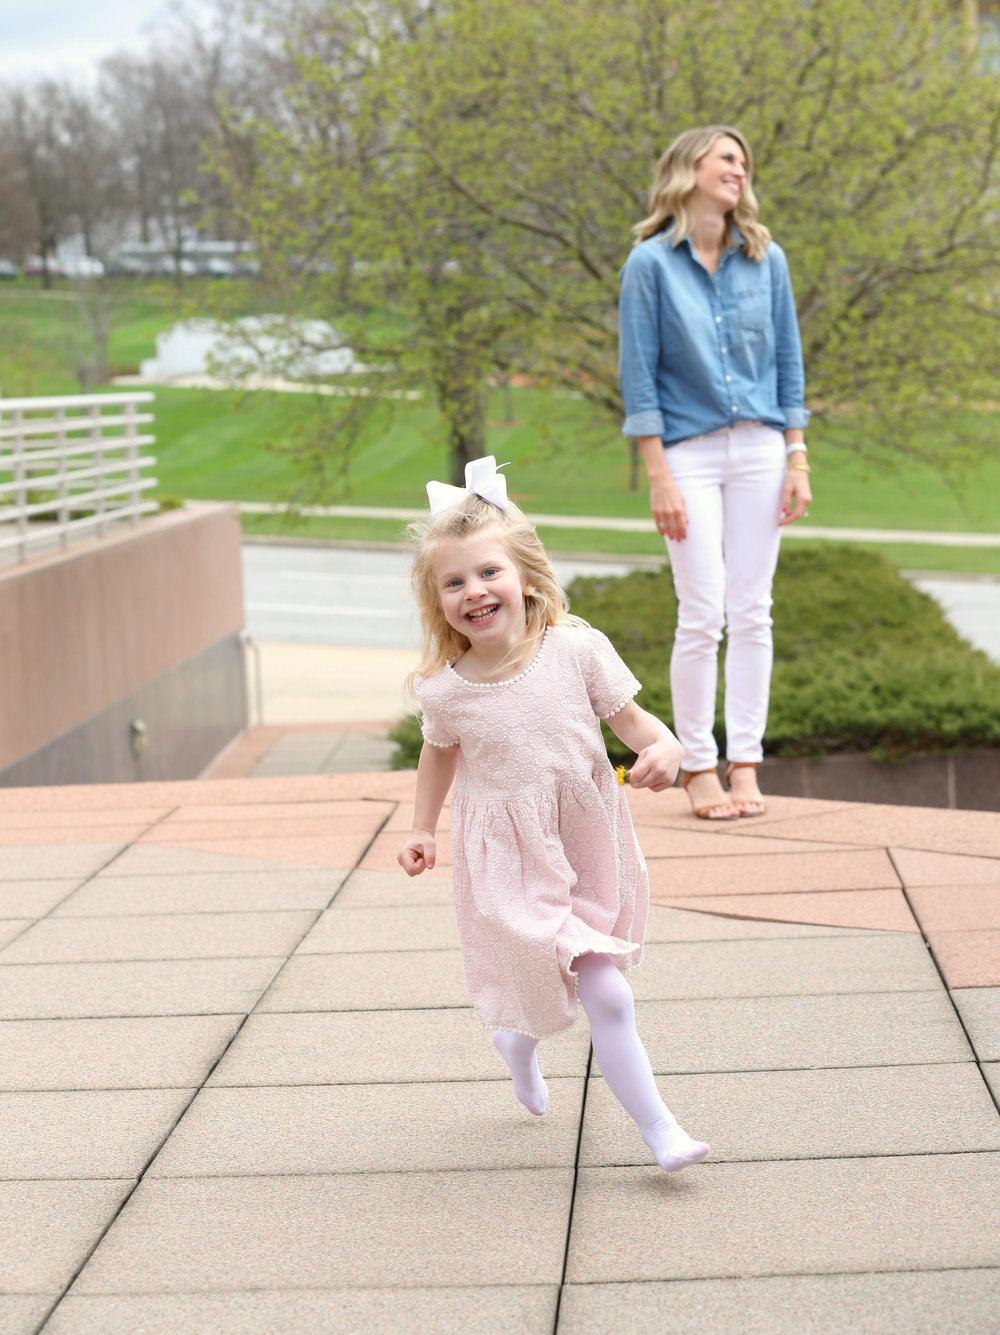 Fashion blogger, Lady and Red laughing in the background while daughter R runs during a photoshoot | LadyandRed.com